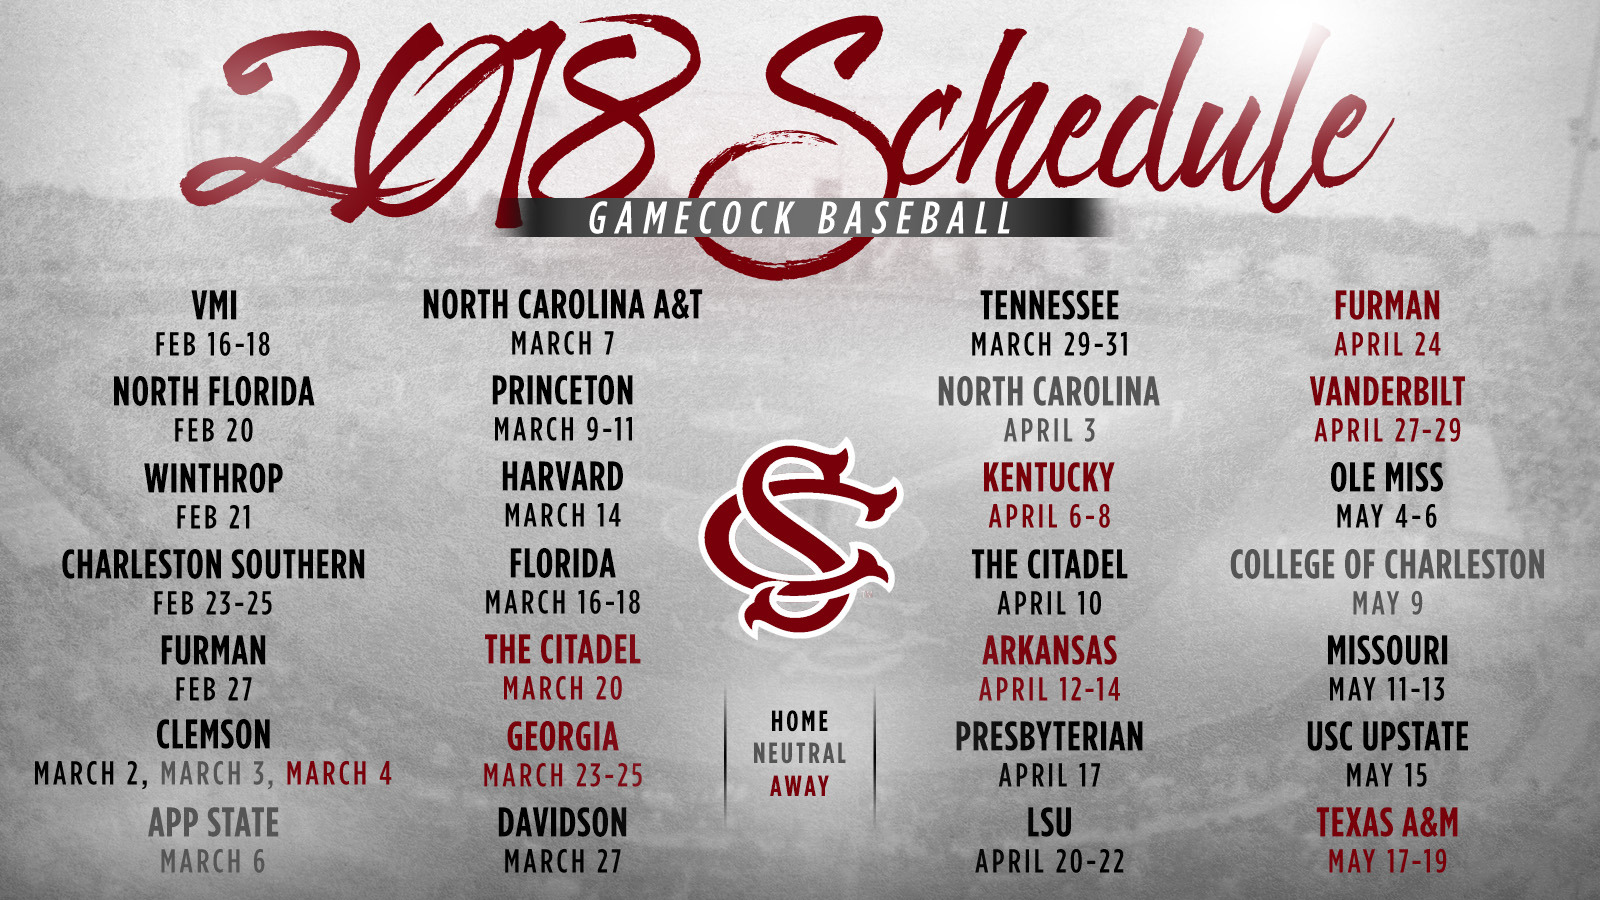 baseball announces 2018 schedule - university of south carolina